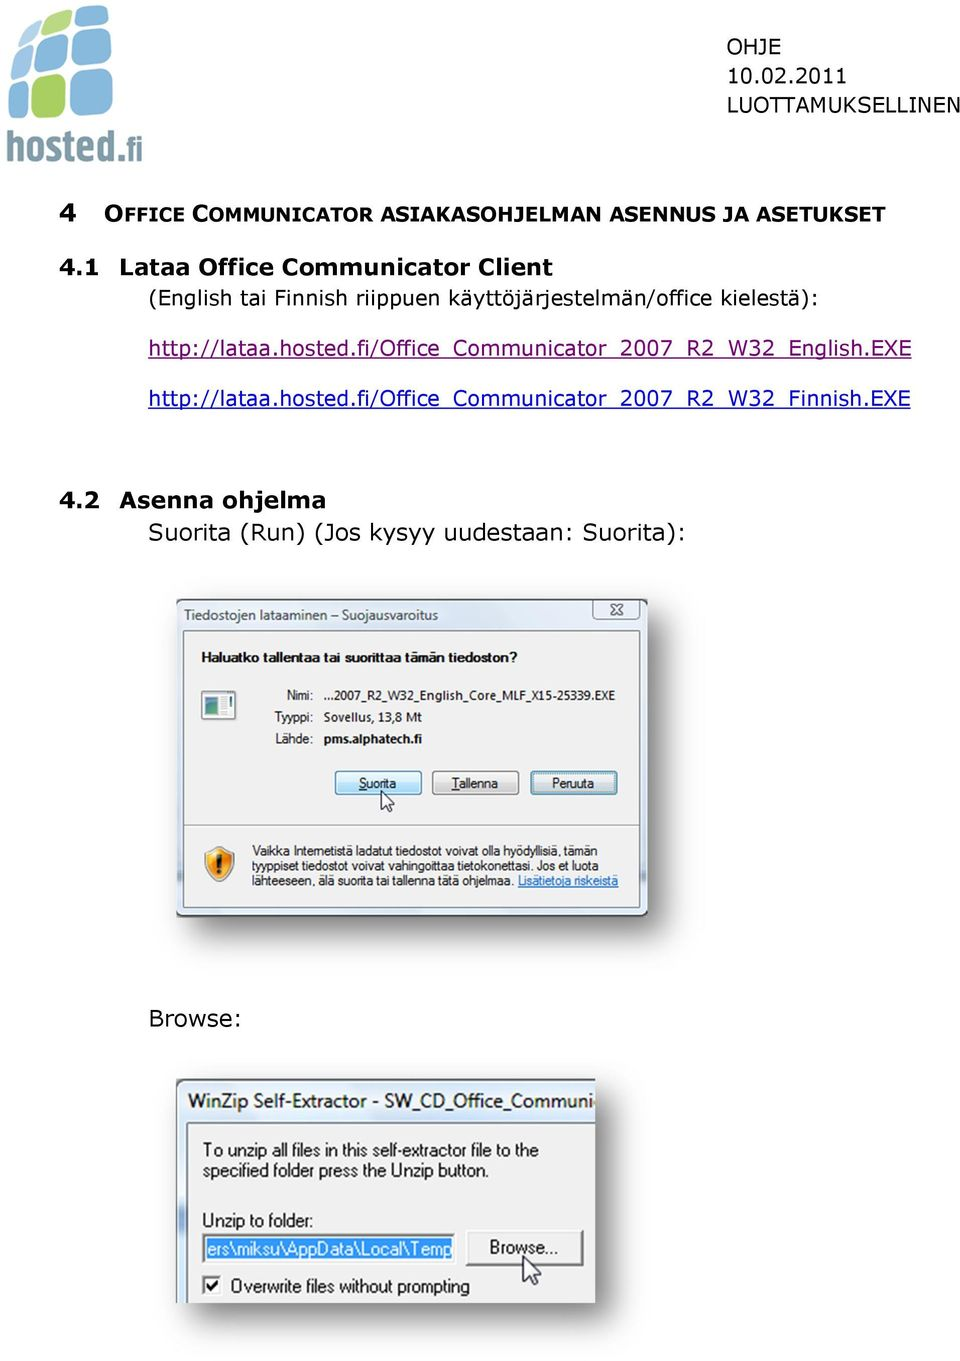 kielestä): http://lataa.hosted.fi/office_communicator_2007_r2_w32_english.exe http://lataa.